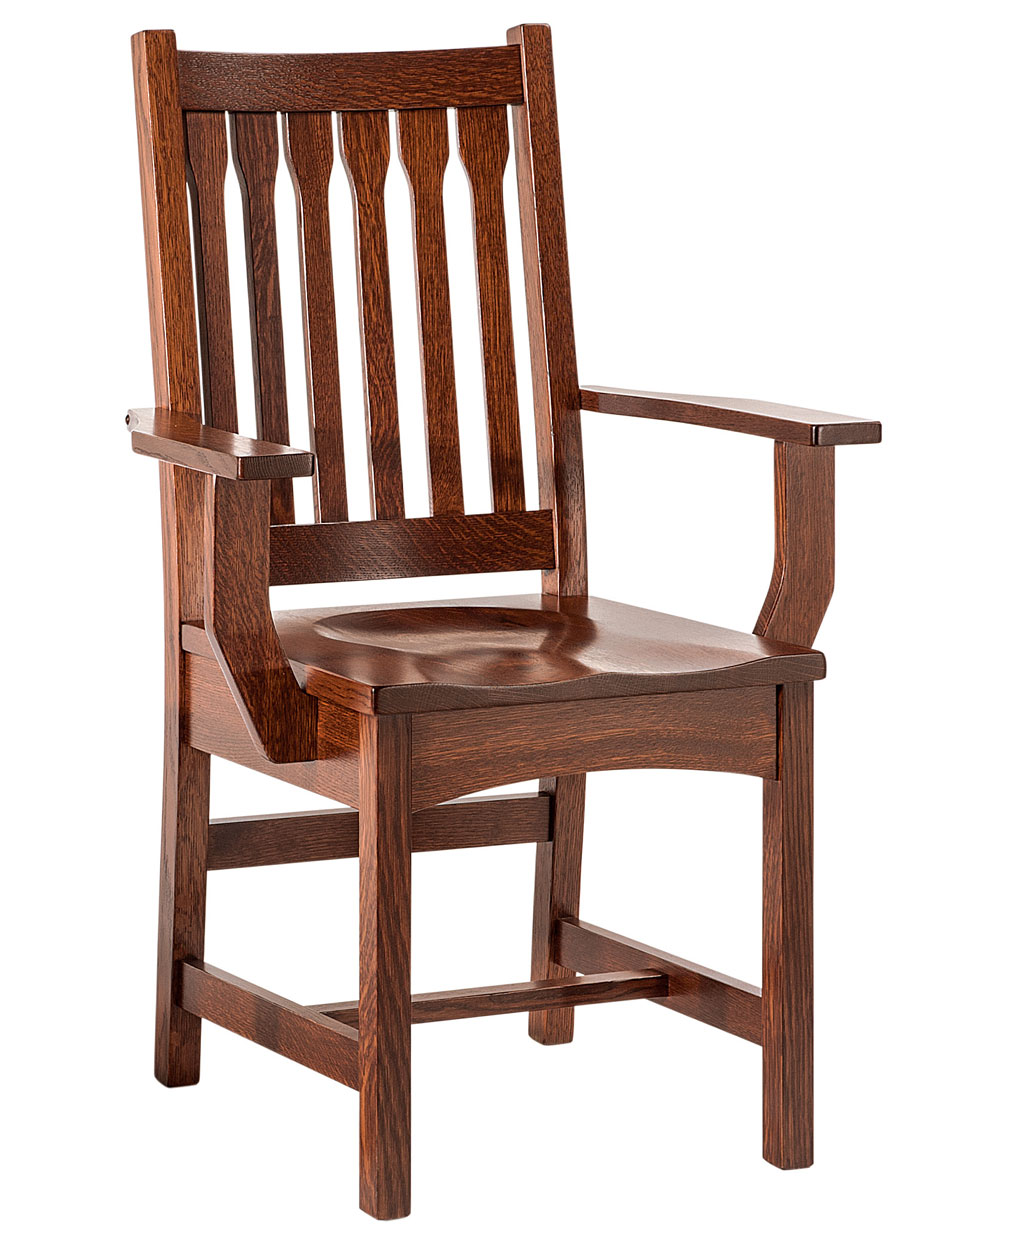 Charmant Buchanan Amish Dining Chair [Arm]